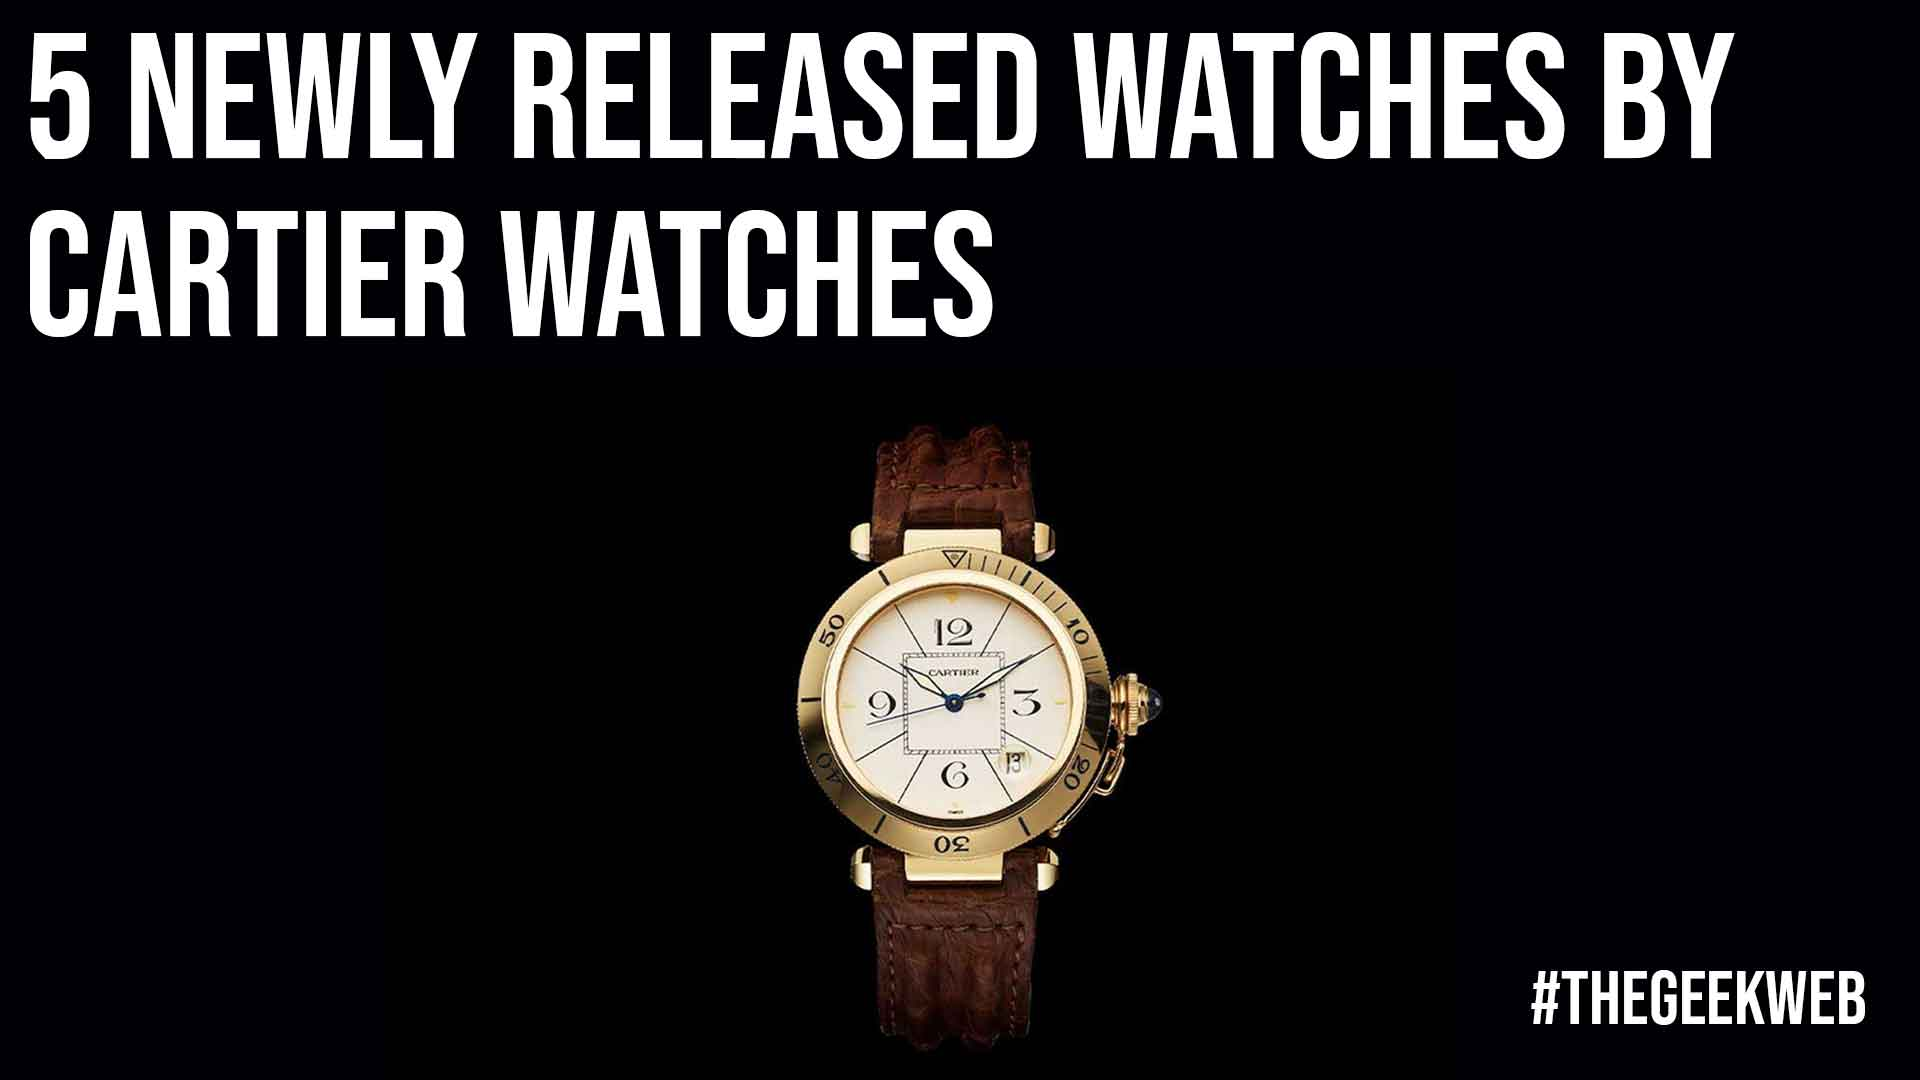 5 Newly Released Watches by Cartier Watches